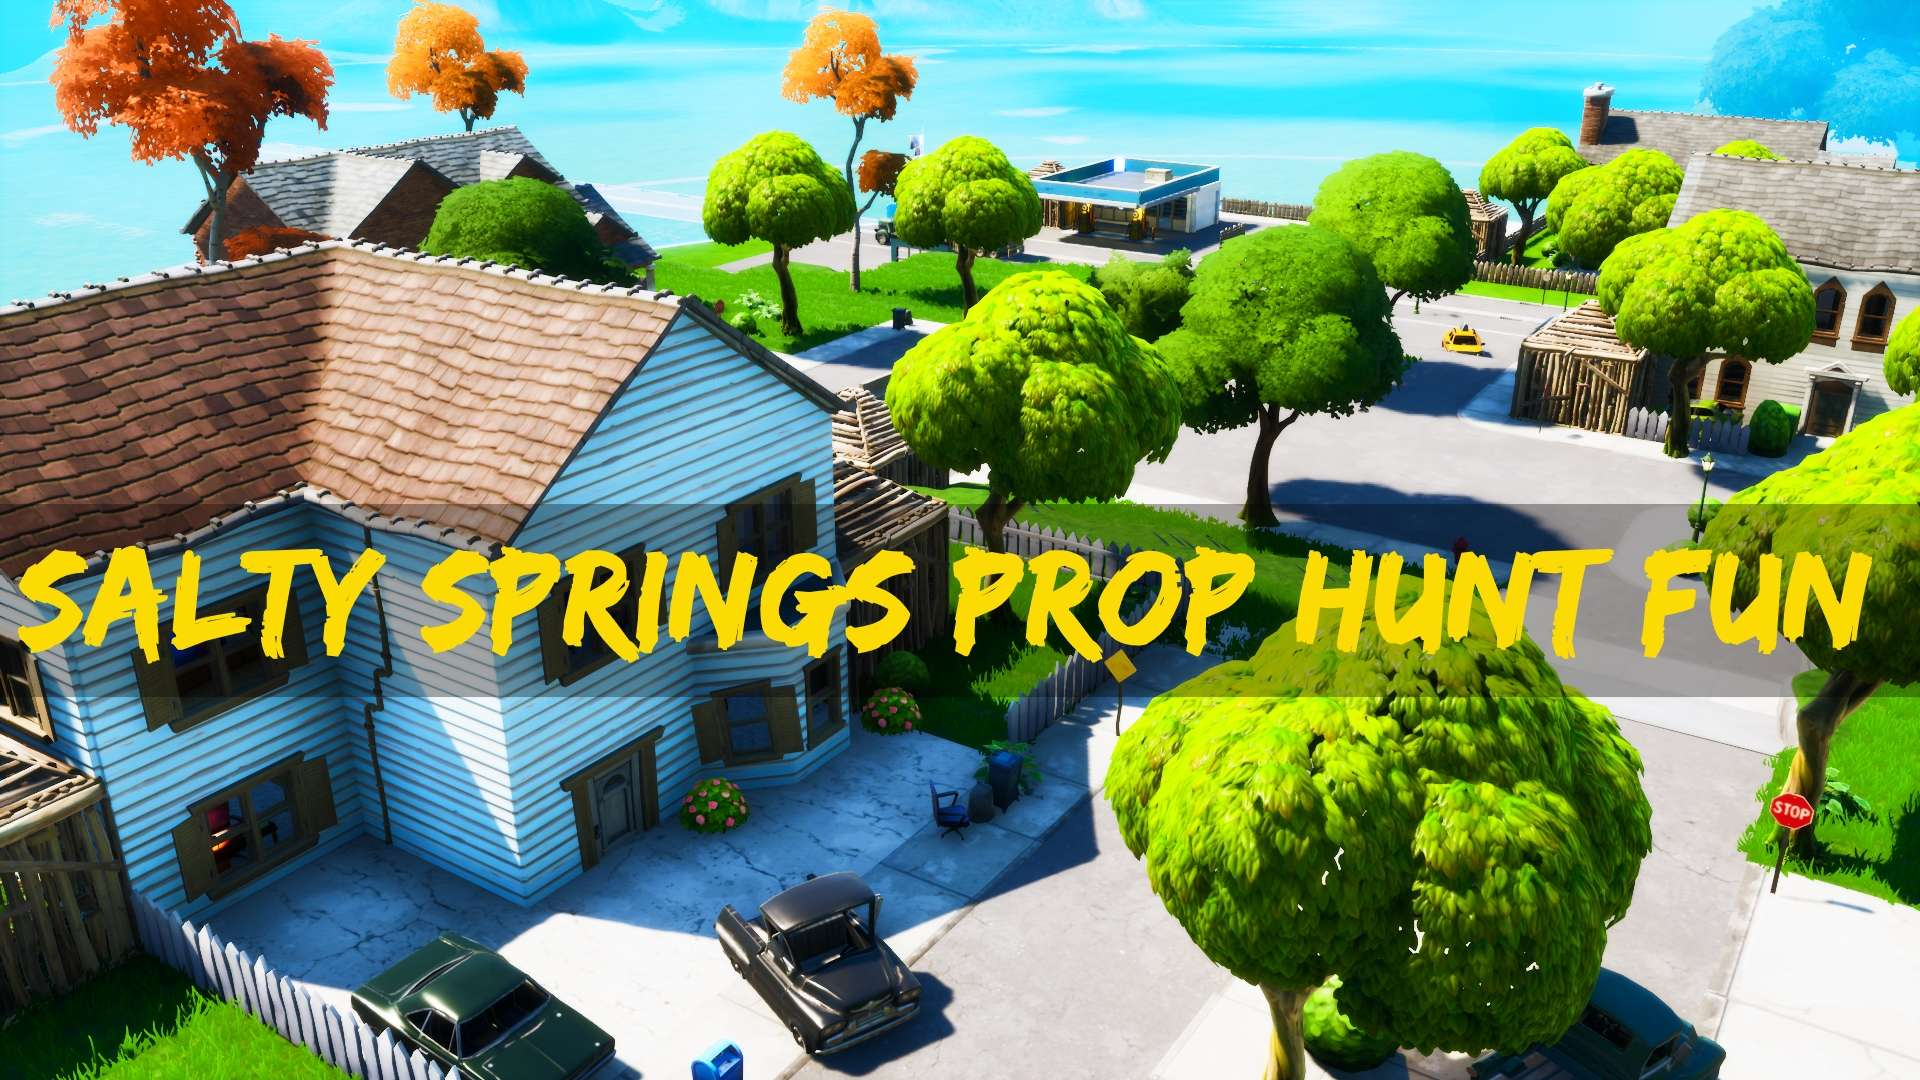 PROP HUNT SALTY SPRINGS